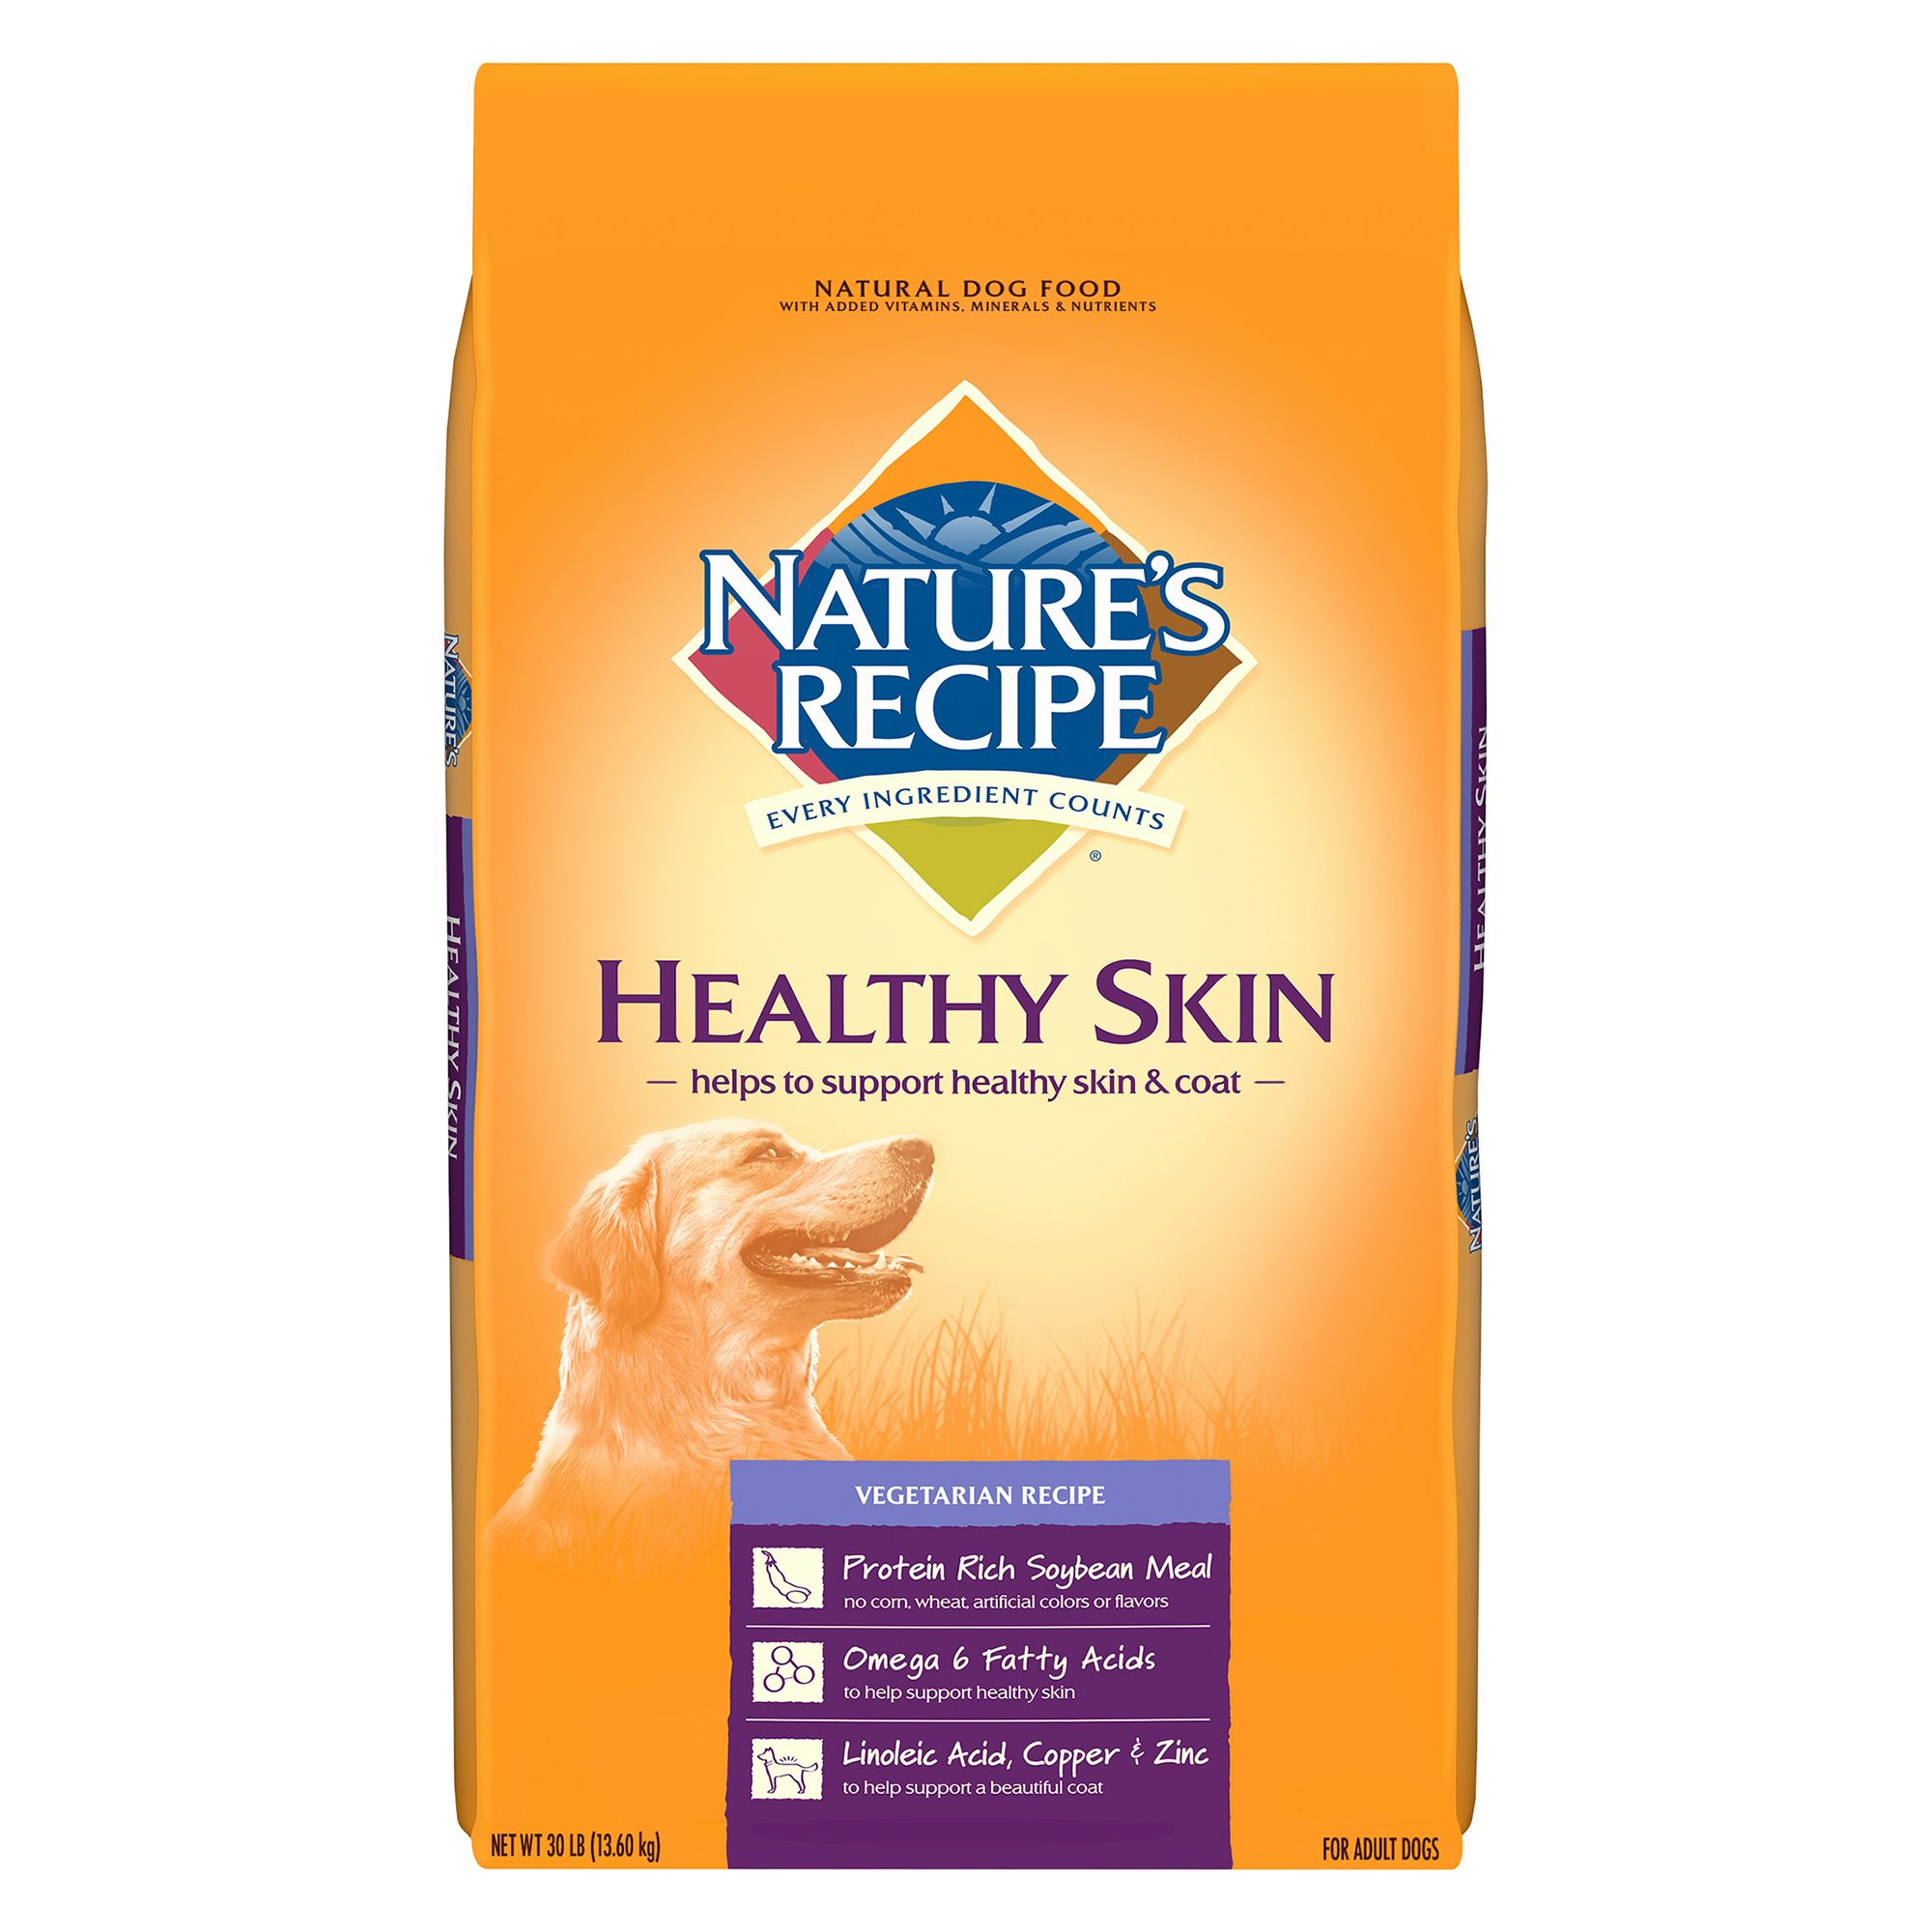 Nature's Recipe Healthy Skin Adult Dog Food size: 30 Lb